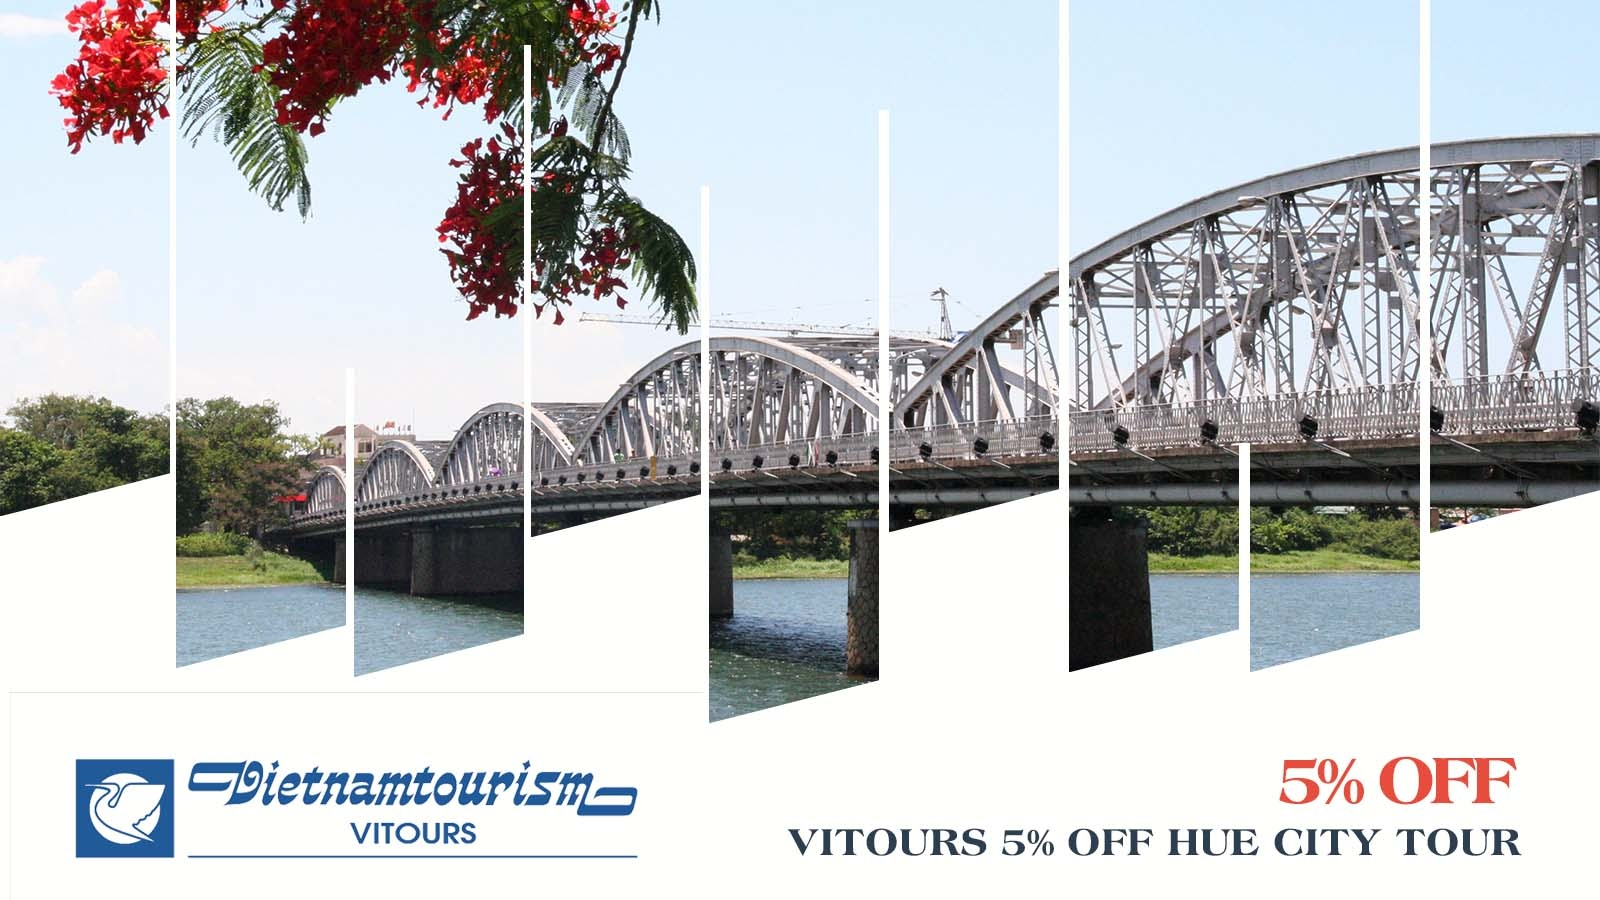 Vitours 5% OFF Hue City Tour 1